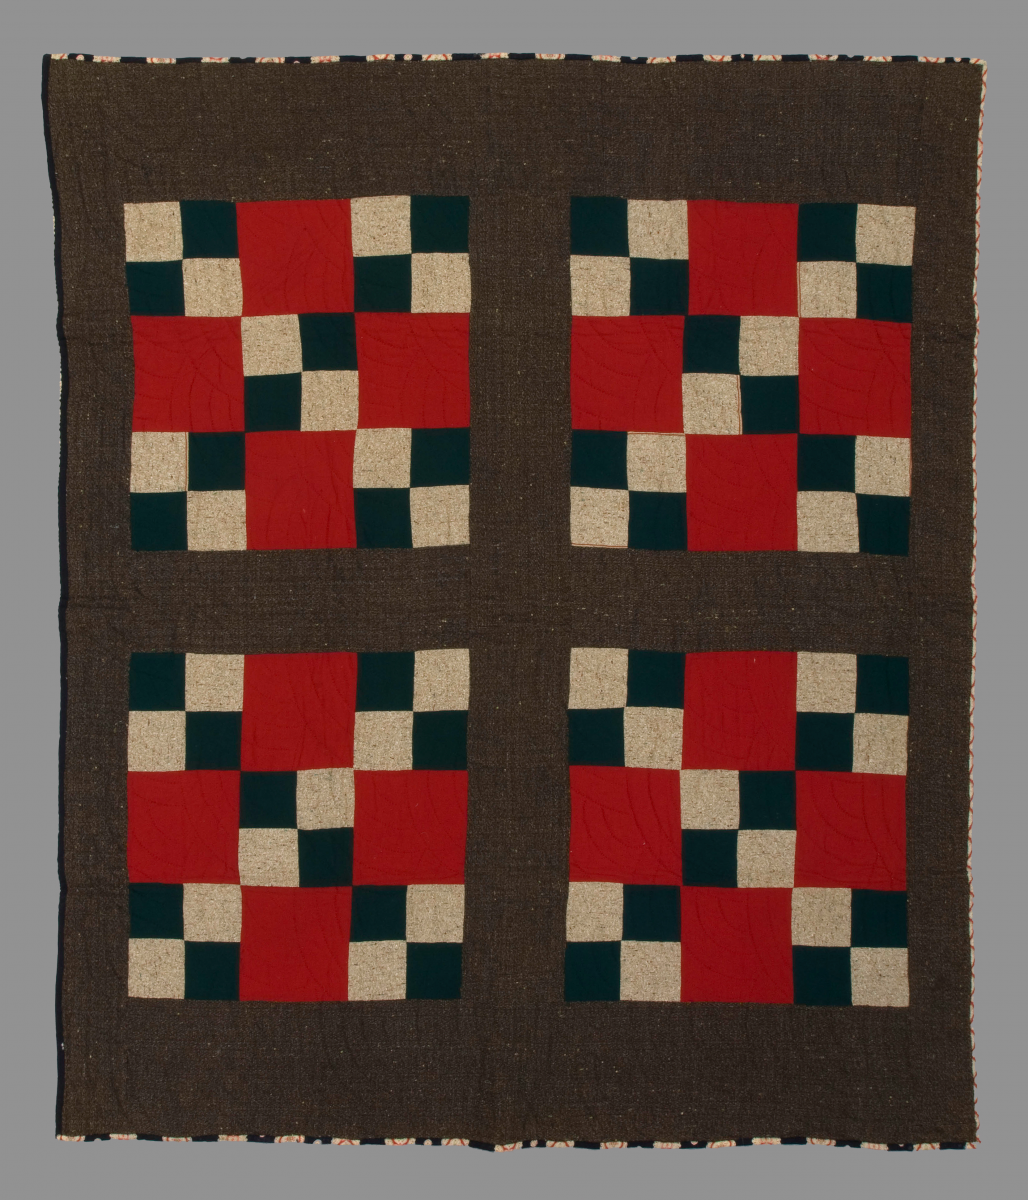 An example of a nine patch quilt